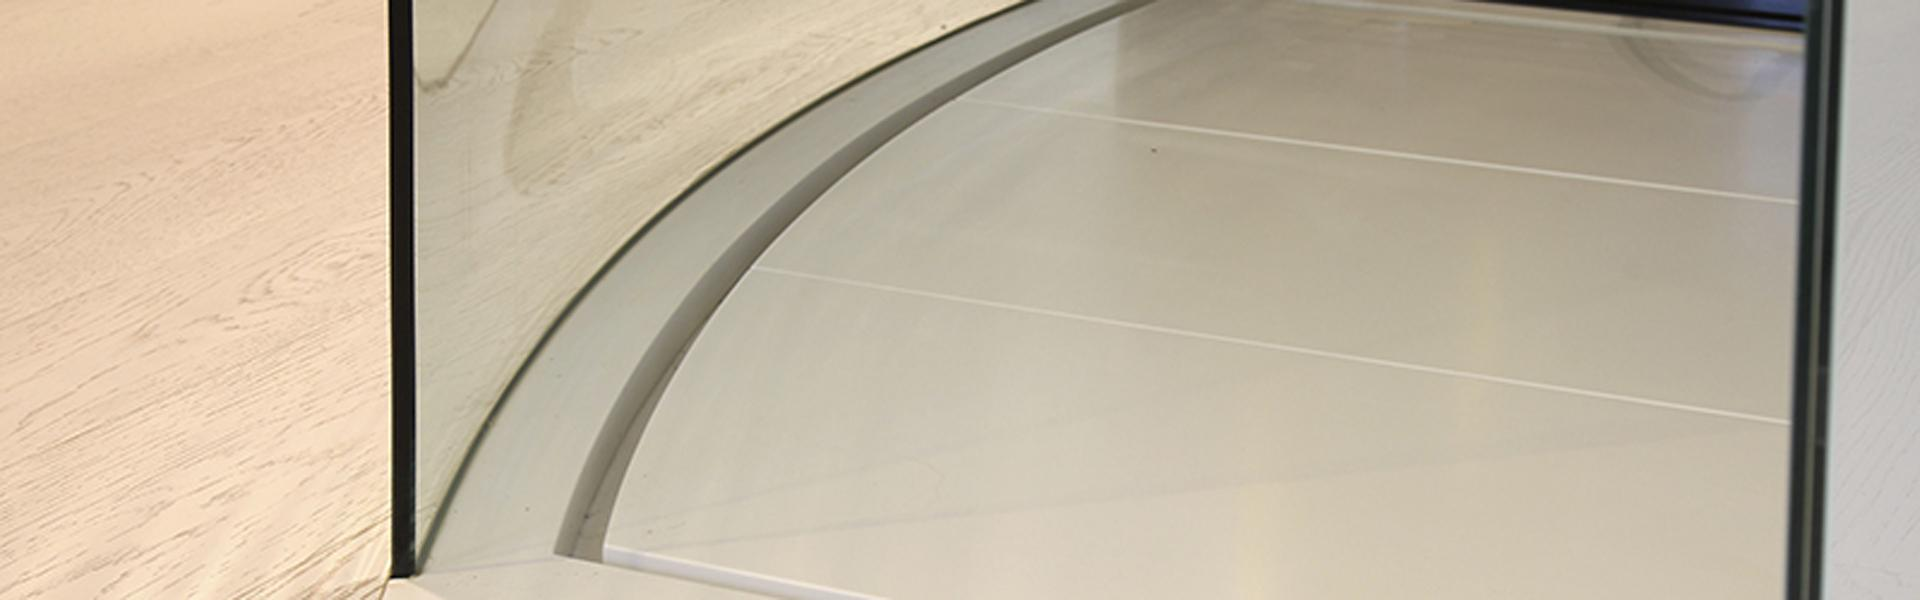 Glass for curved shower cabinets